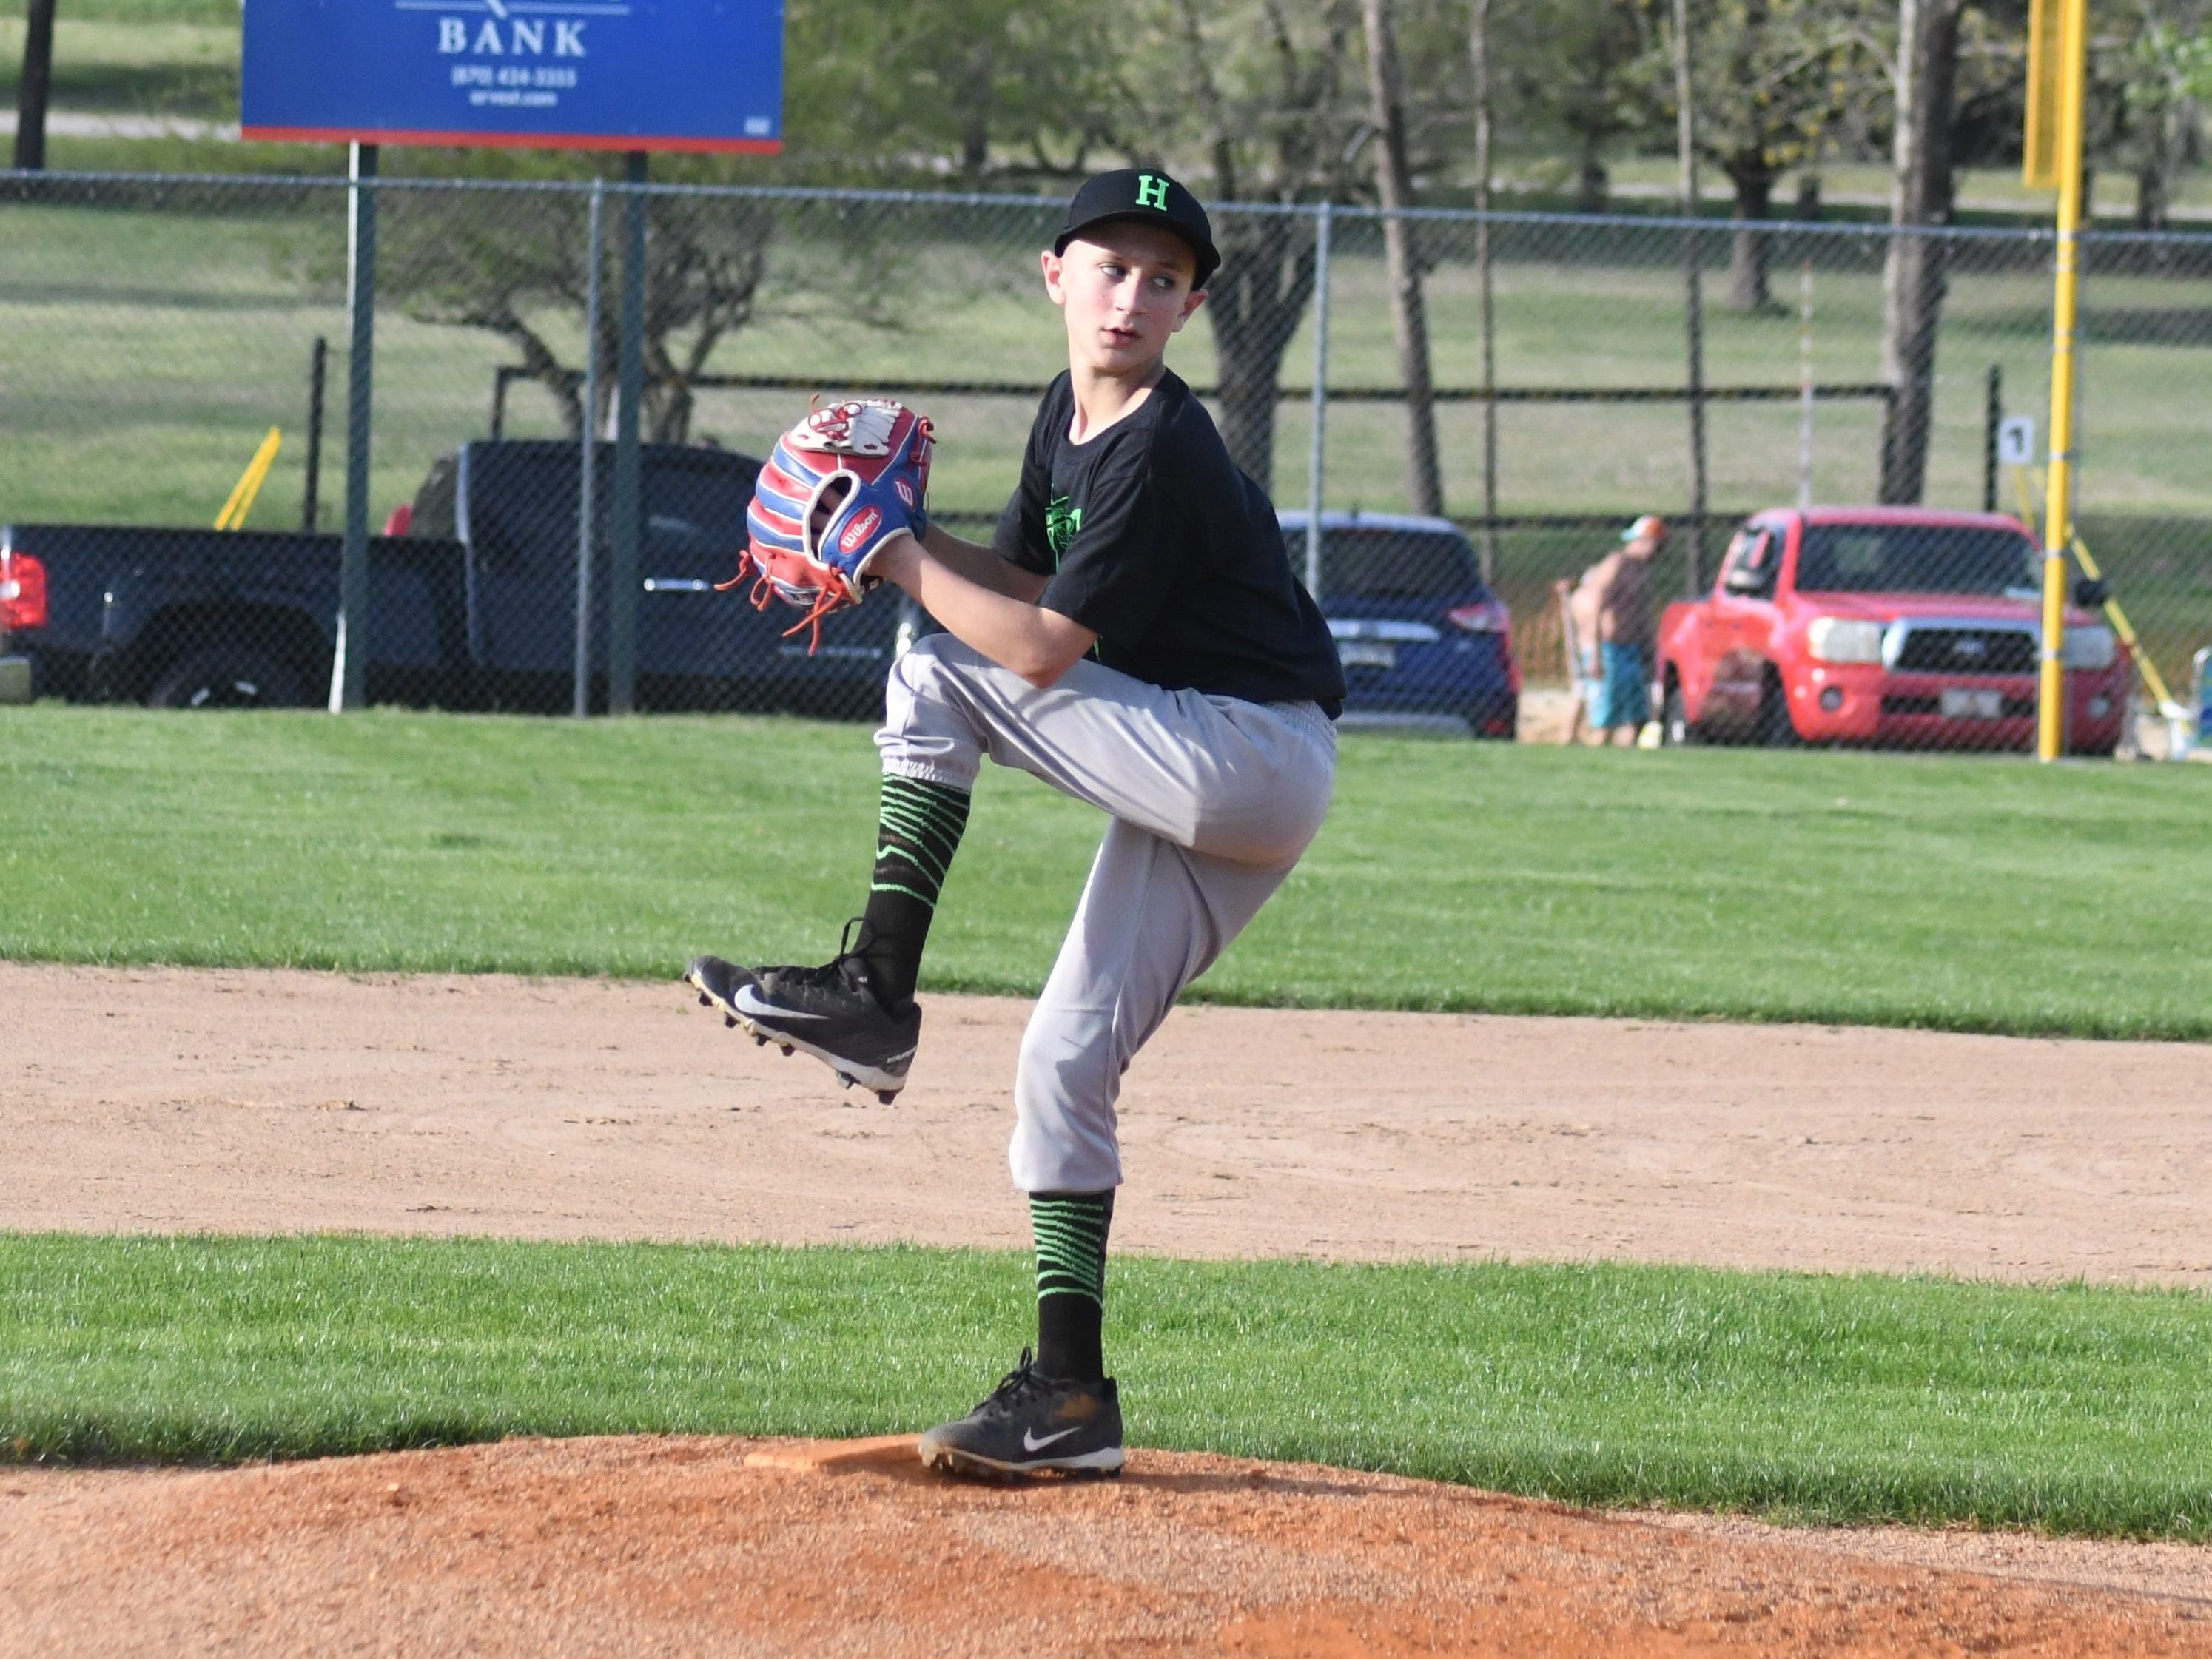 Jordan Corbett pitches for the Holy Smoke team during their game at NEXT Powered by NAEC Field on Tuesday evening.